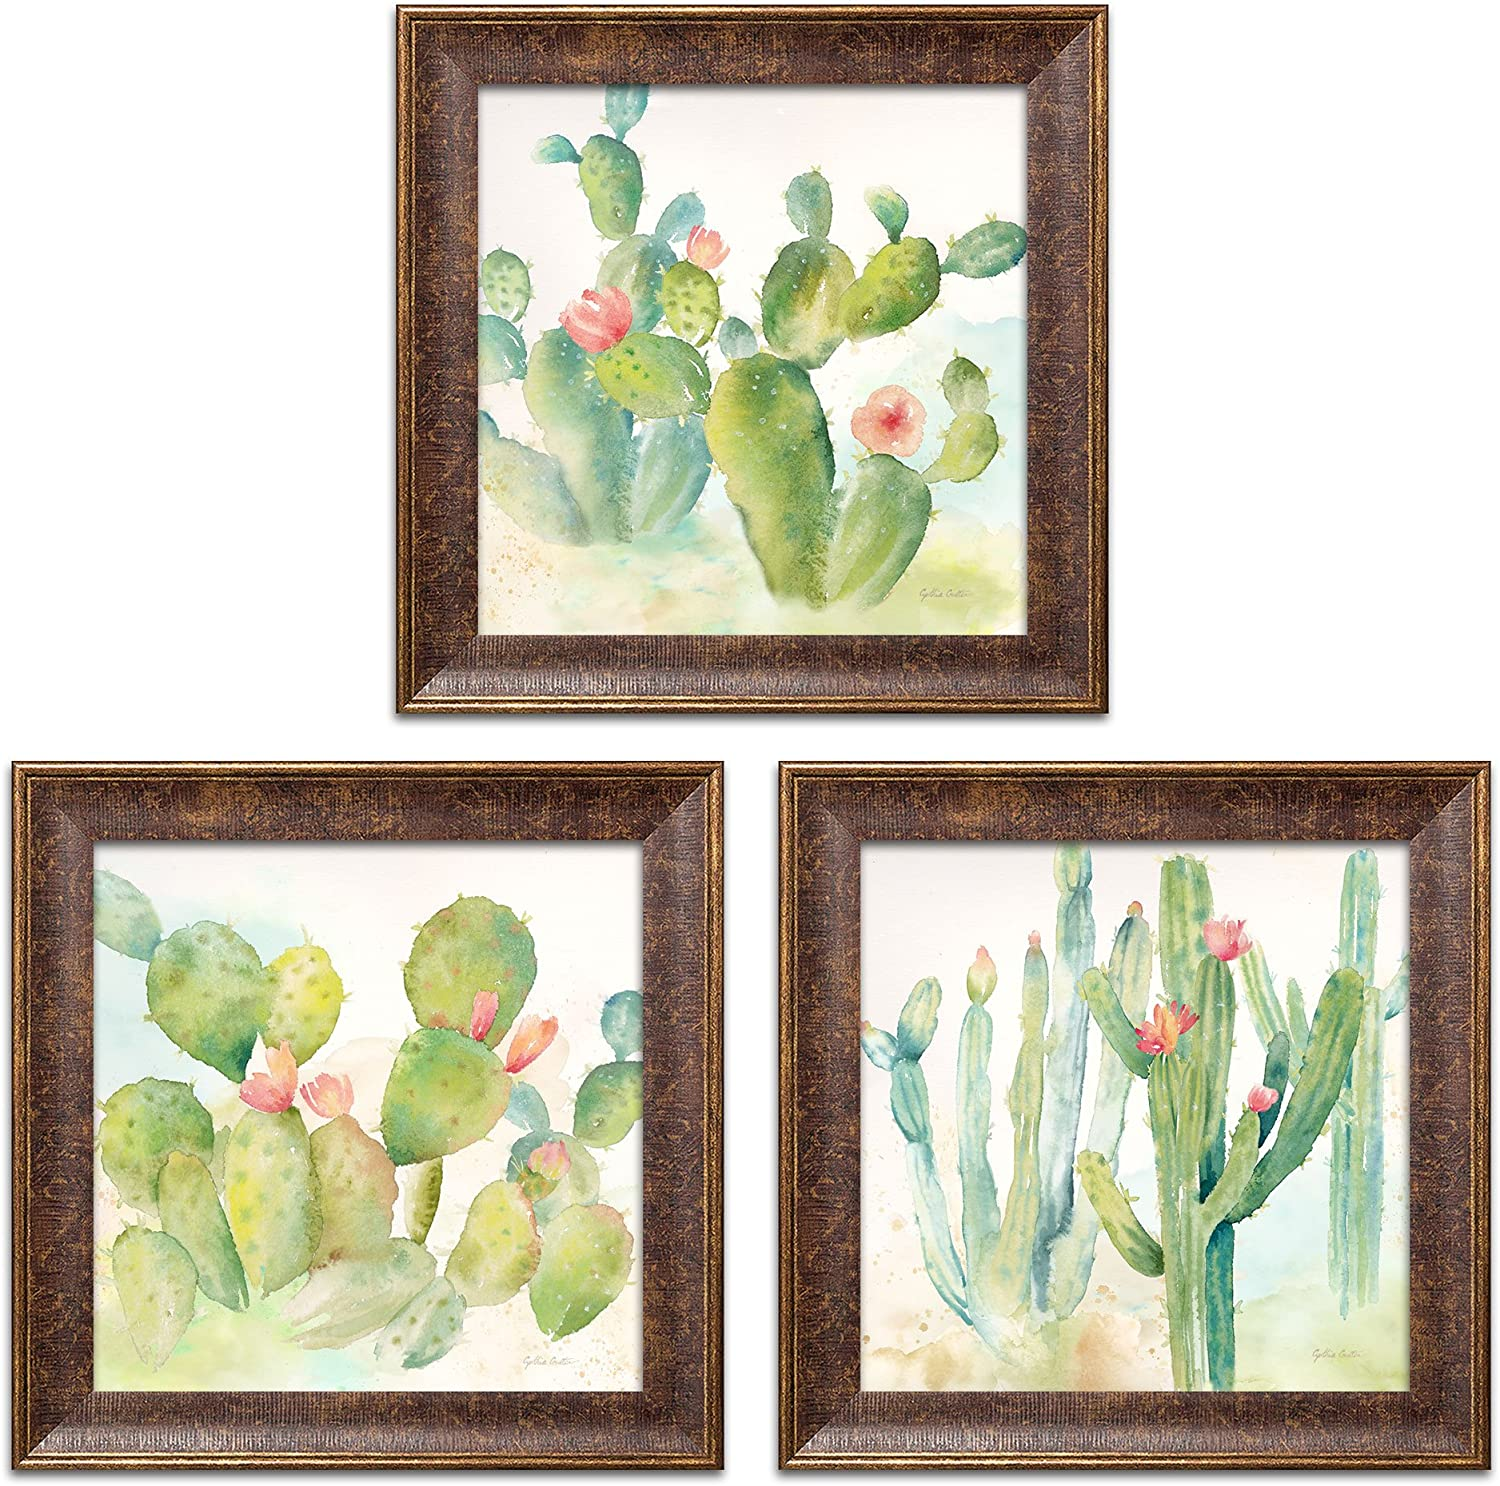 Roaring Brook Lovely Watercolor-Style Desert Cactus Print Set by Cynthia Coulter; Three 12x12in s